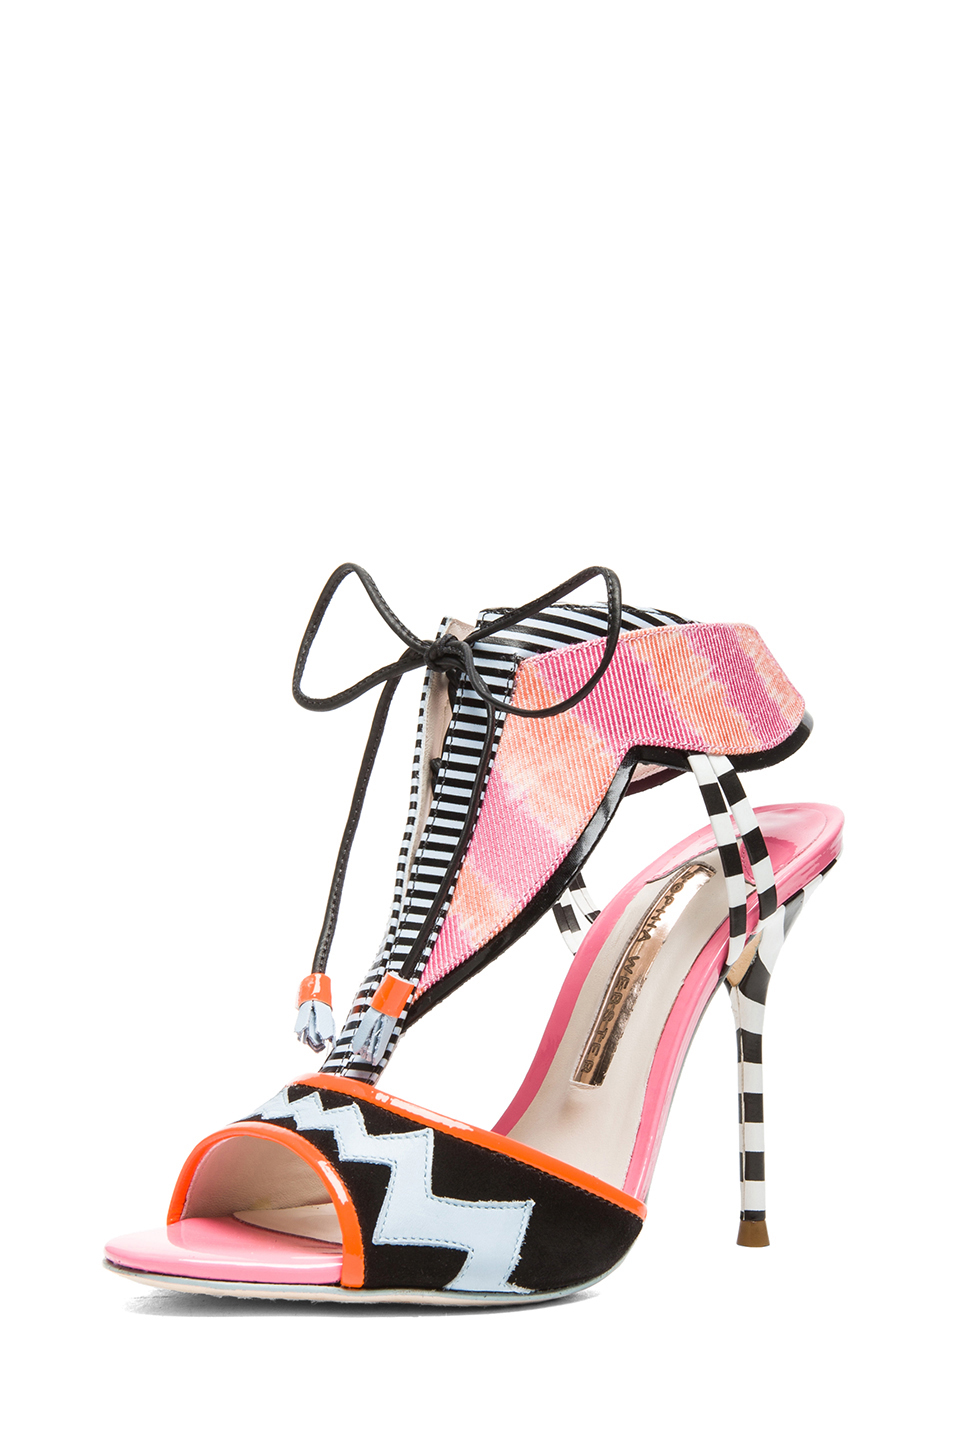 Sophia Webster|Leilou Leather & Suede Stripe Heels in Pink